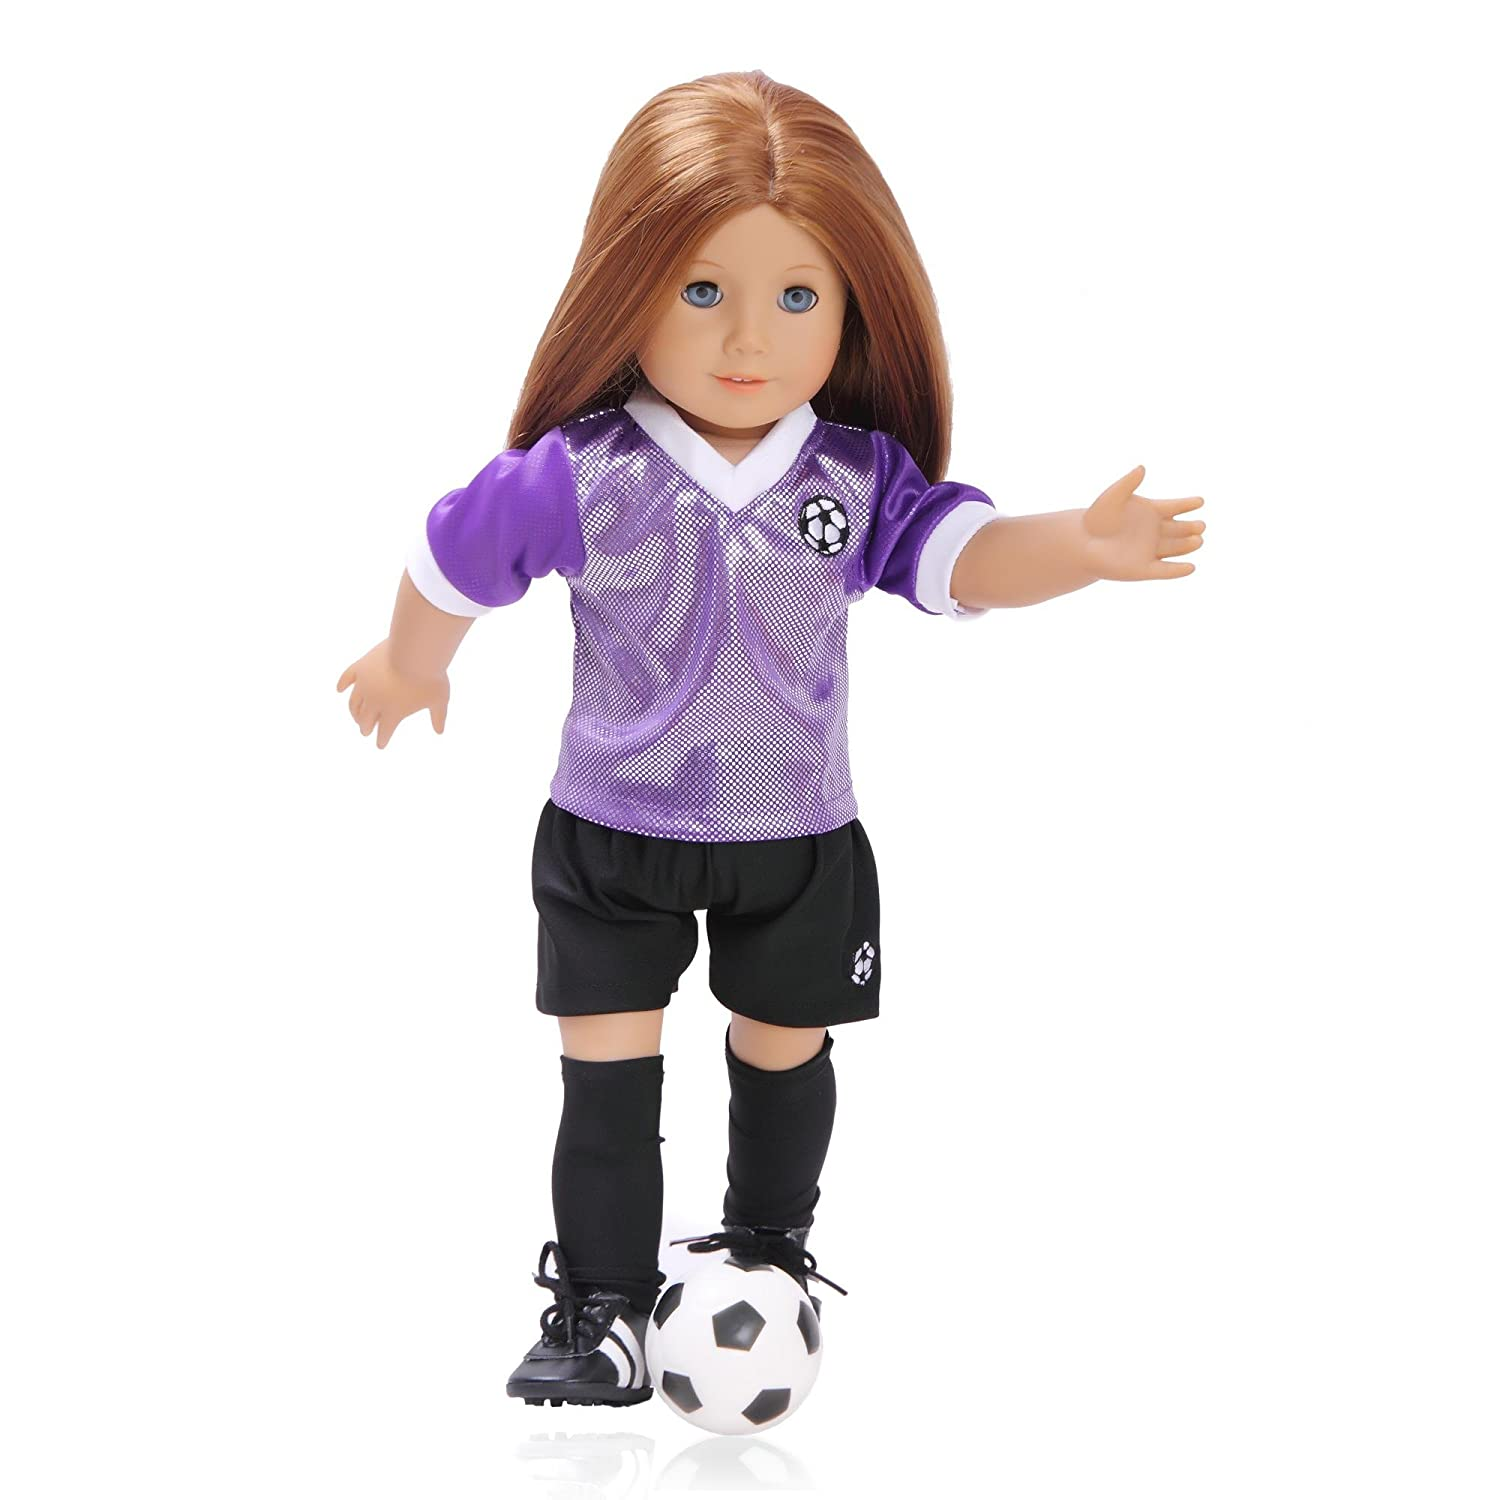 Toy Doll Clothes - 5 Piece Soccer Set